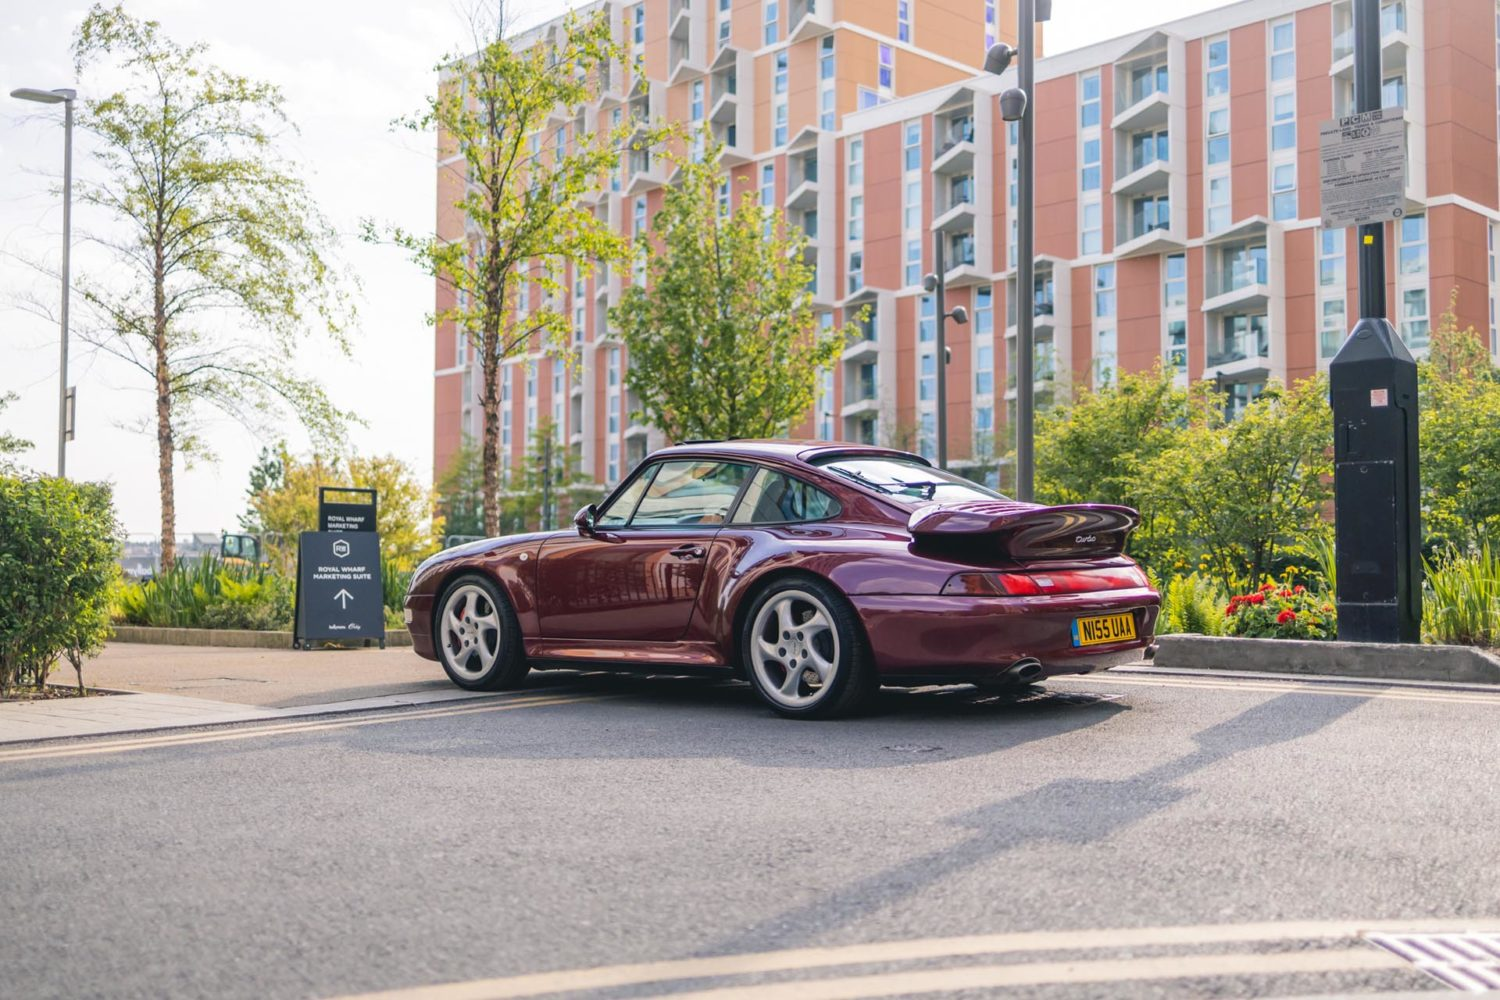 993 turbo parked outside